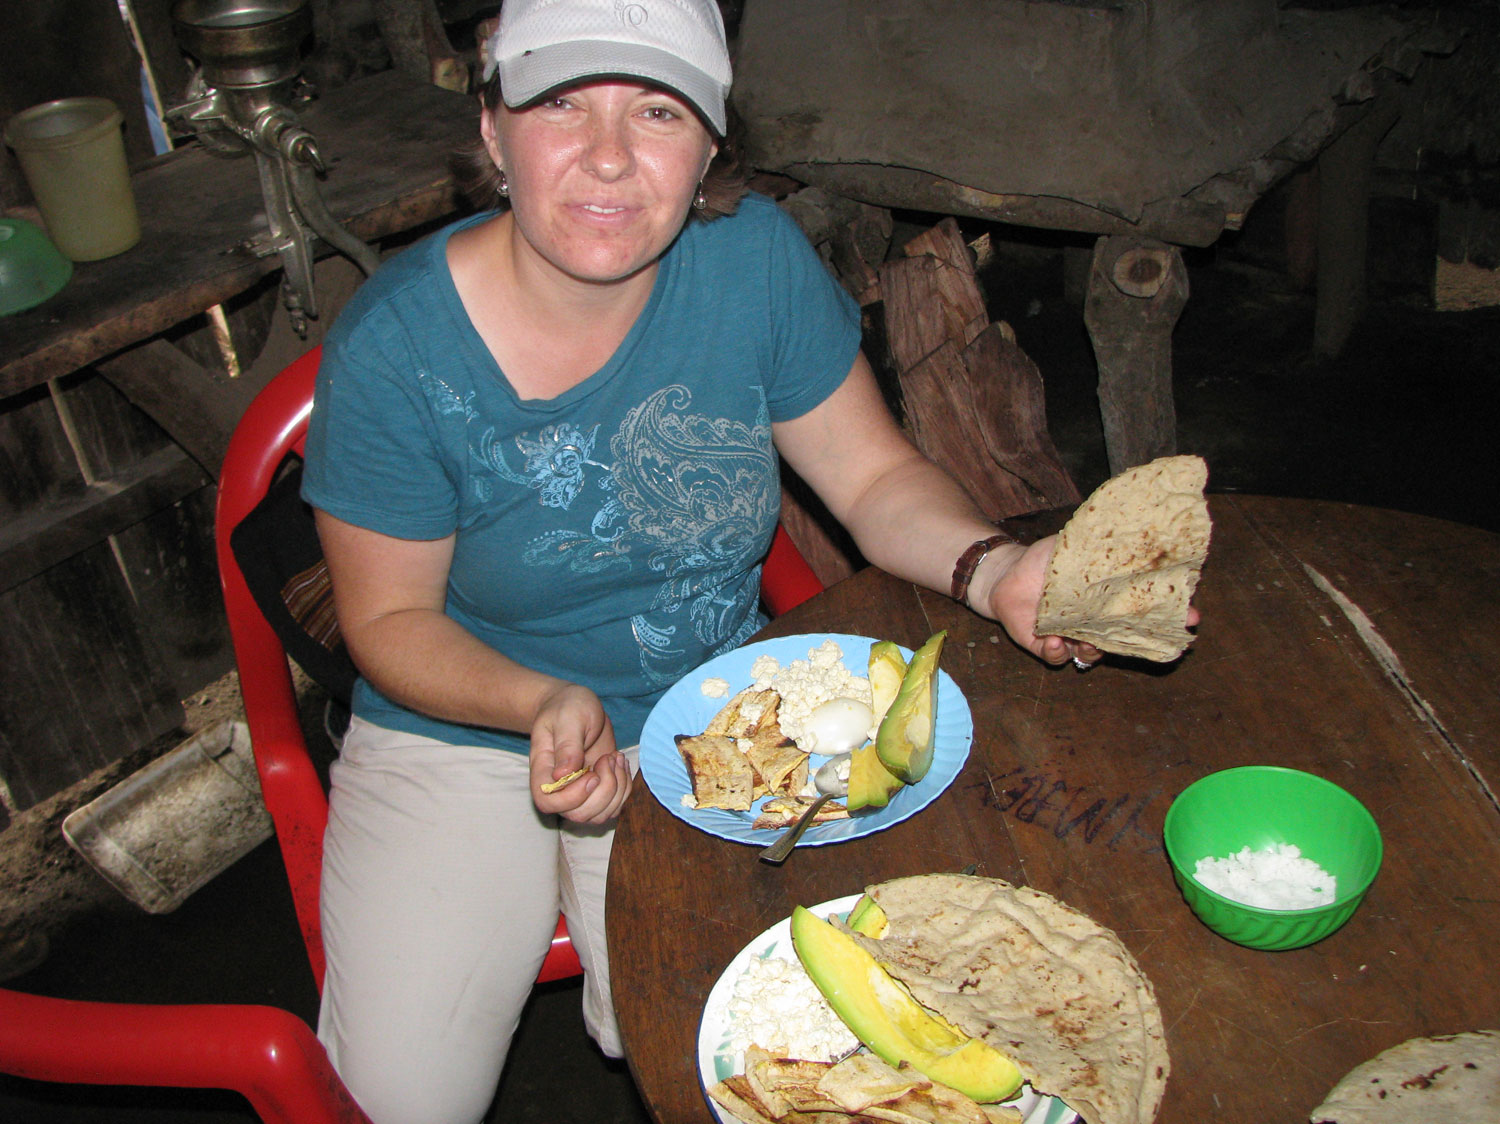 The community members prepared a feast of plantains, tortillas, huevos, and avacados for us.